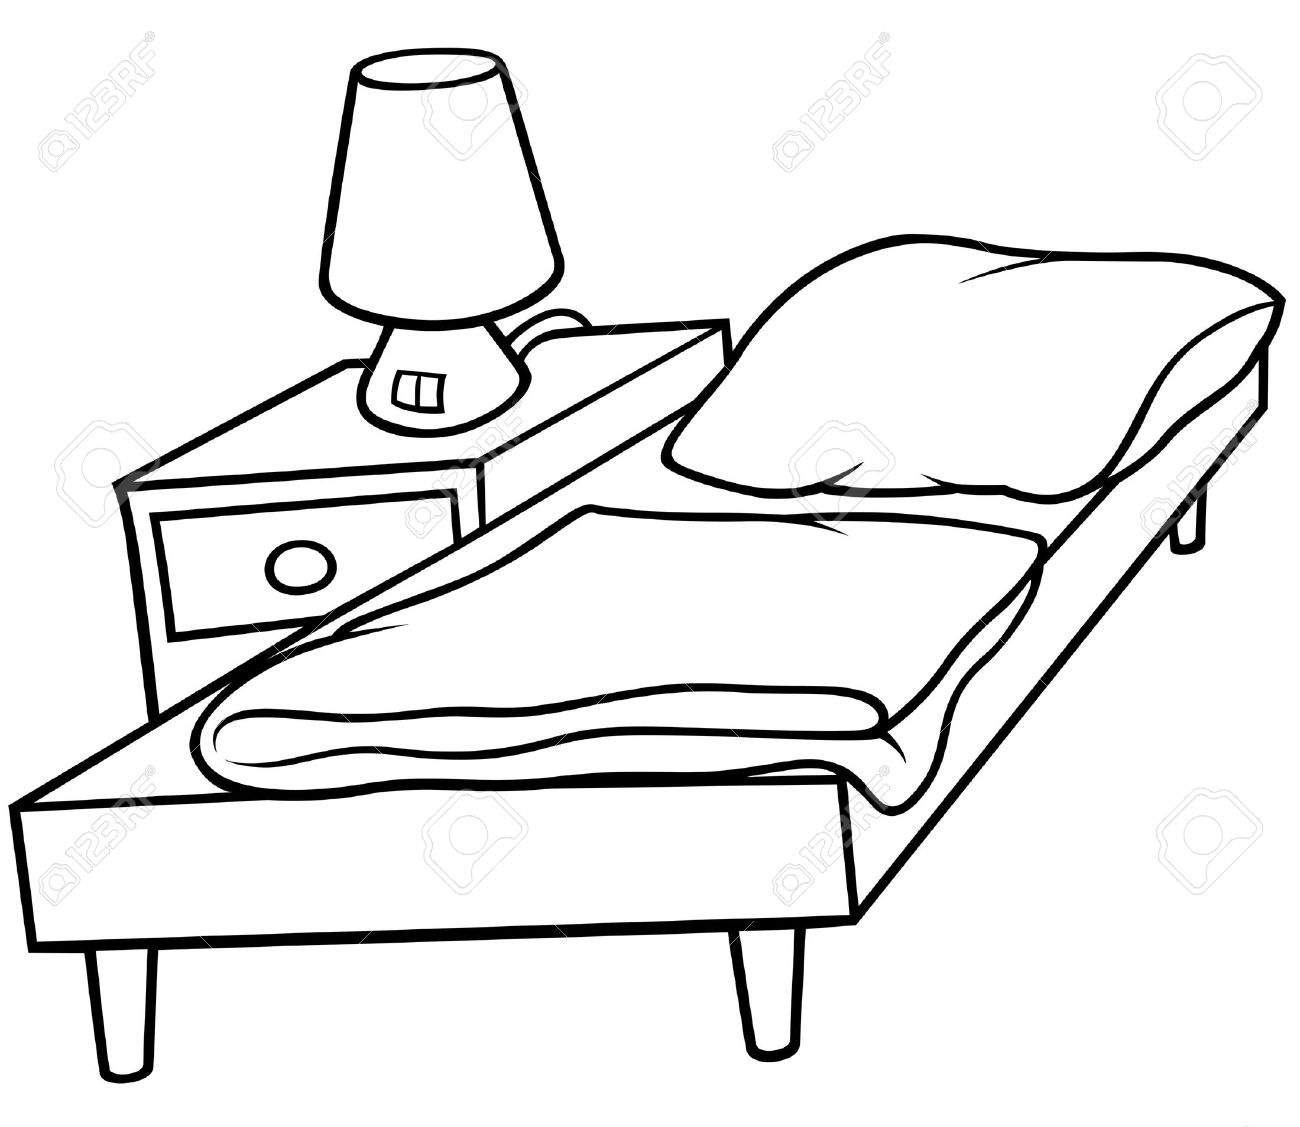 Bed and Bedside - Black and White Cartoon illustration, Vector Stock Vector - 8756116